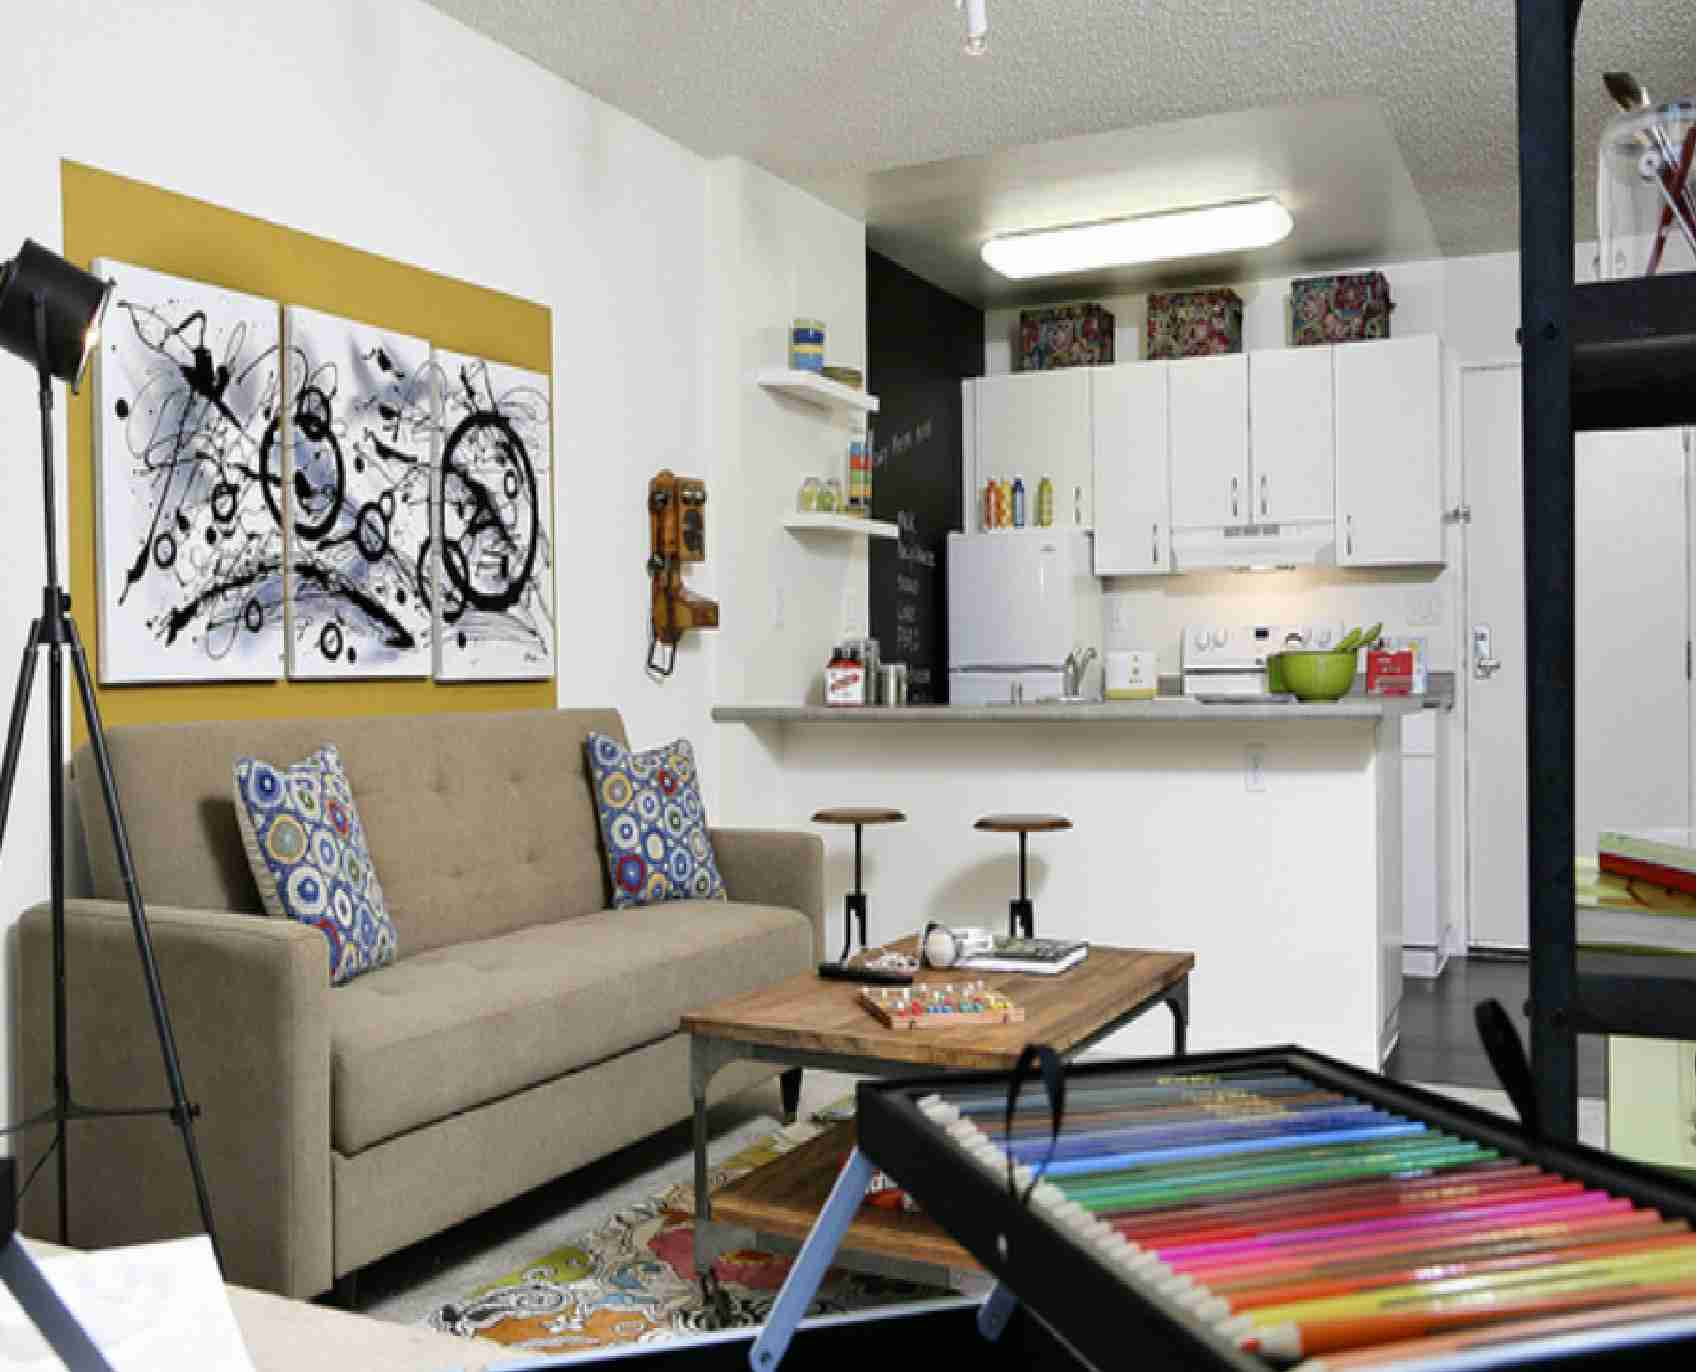 Basic Decorating Ideas For Small Spaces  Bee Home Plan. Party Ideas Preschoolers. Toy Storage Ideas Living Room. Easy Storage Ideas For Kitchen. Brunch Recipes Bon Appetit. Garage Extension Ideas. Painting Ideas Techniques. Drawing Ideas For Dads. Food Ideas With Meat